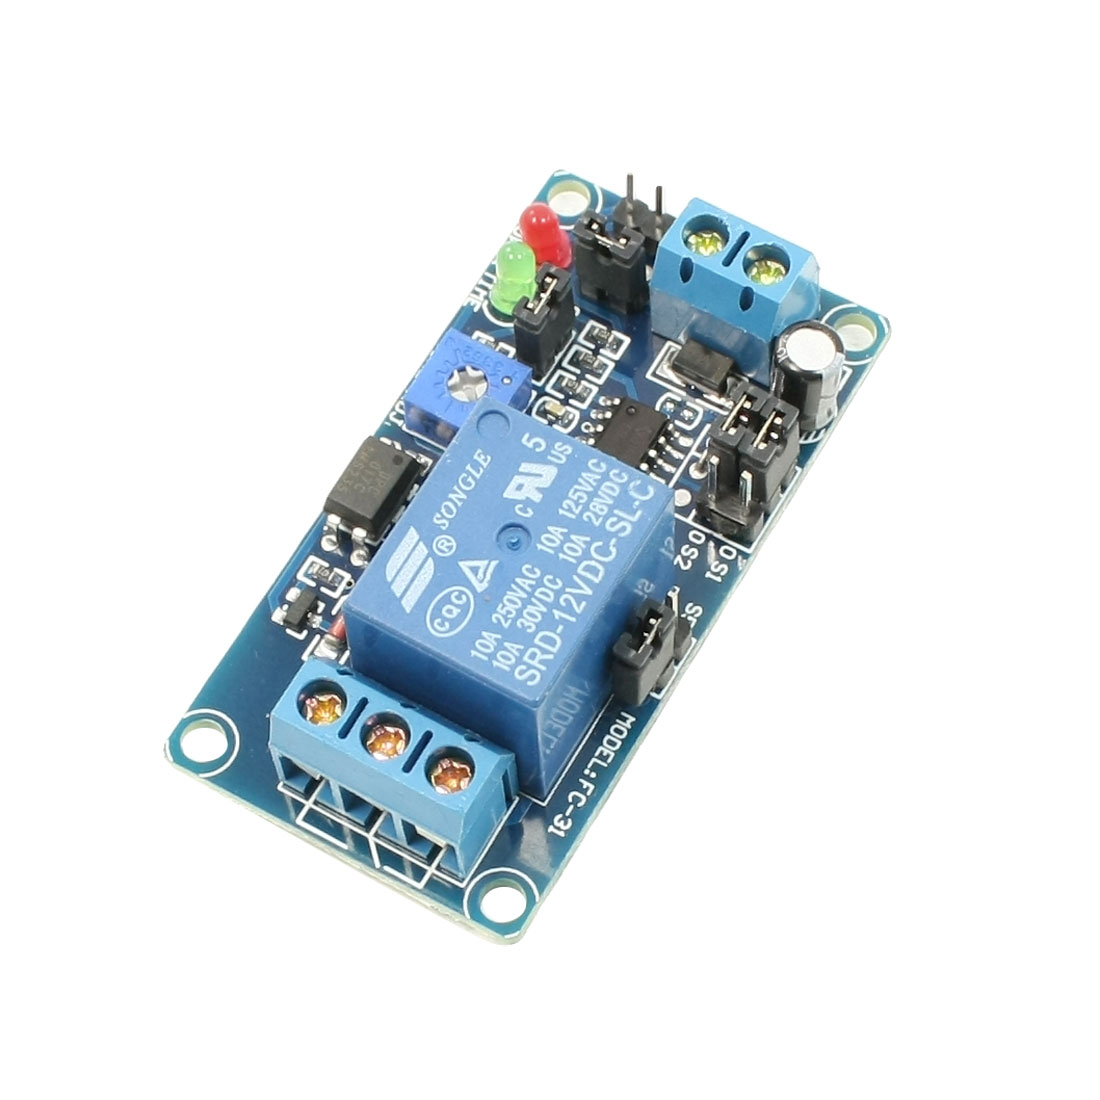 DC 12V SRD-12VDC-SL-C Circulate Time Delay Relay Module Board